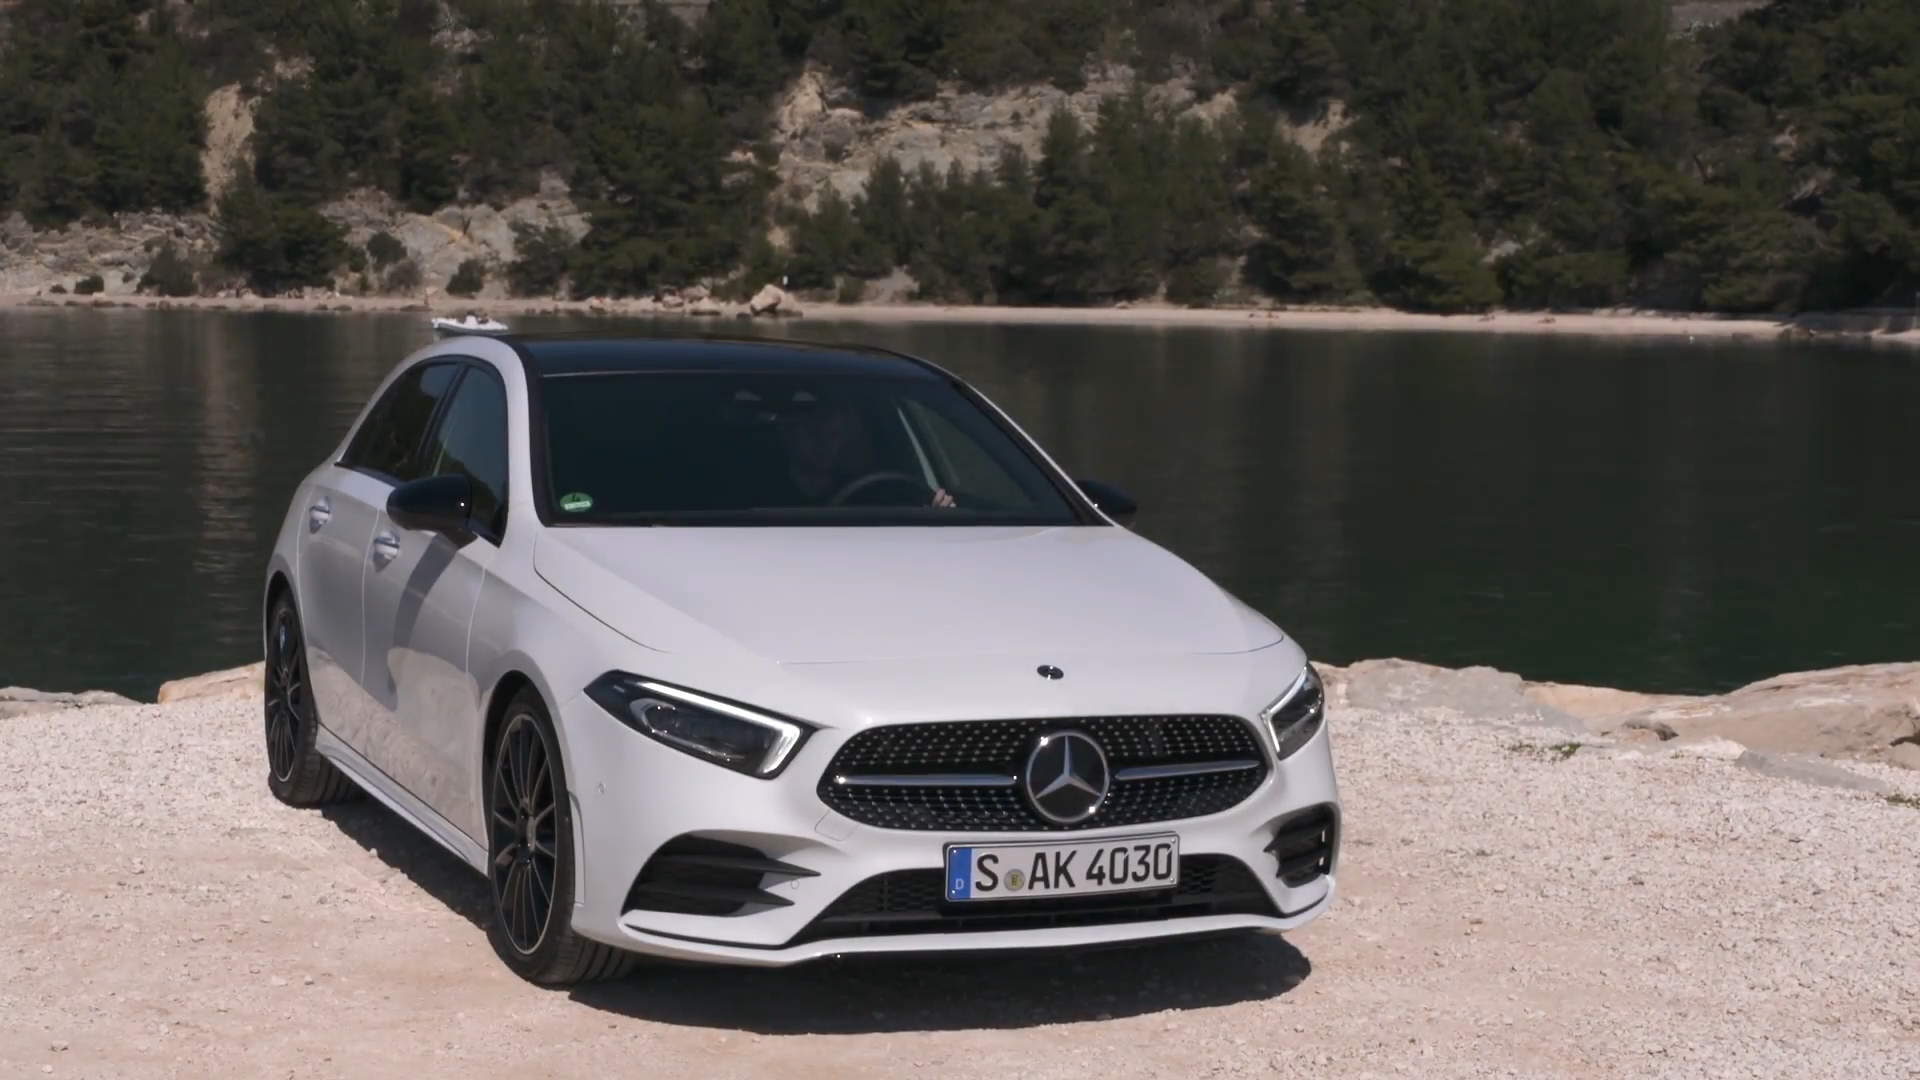 The new Mercedes Benz A 200 Driving Video